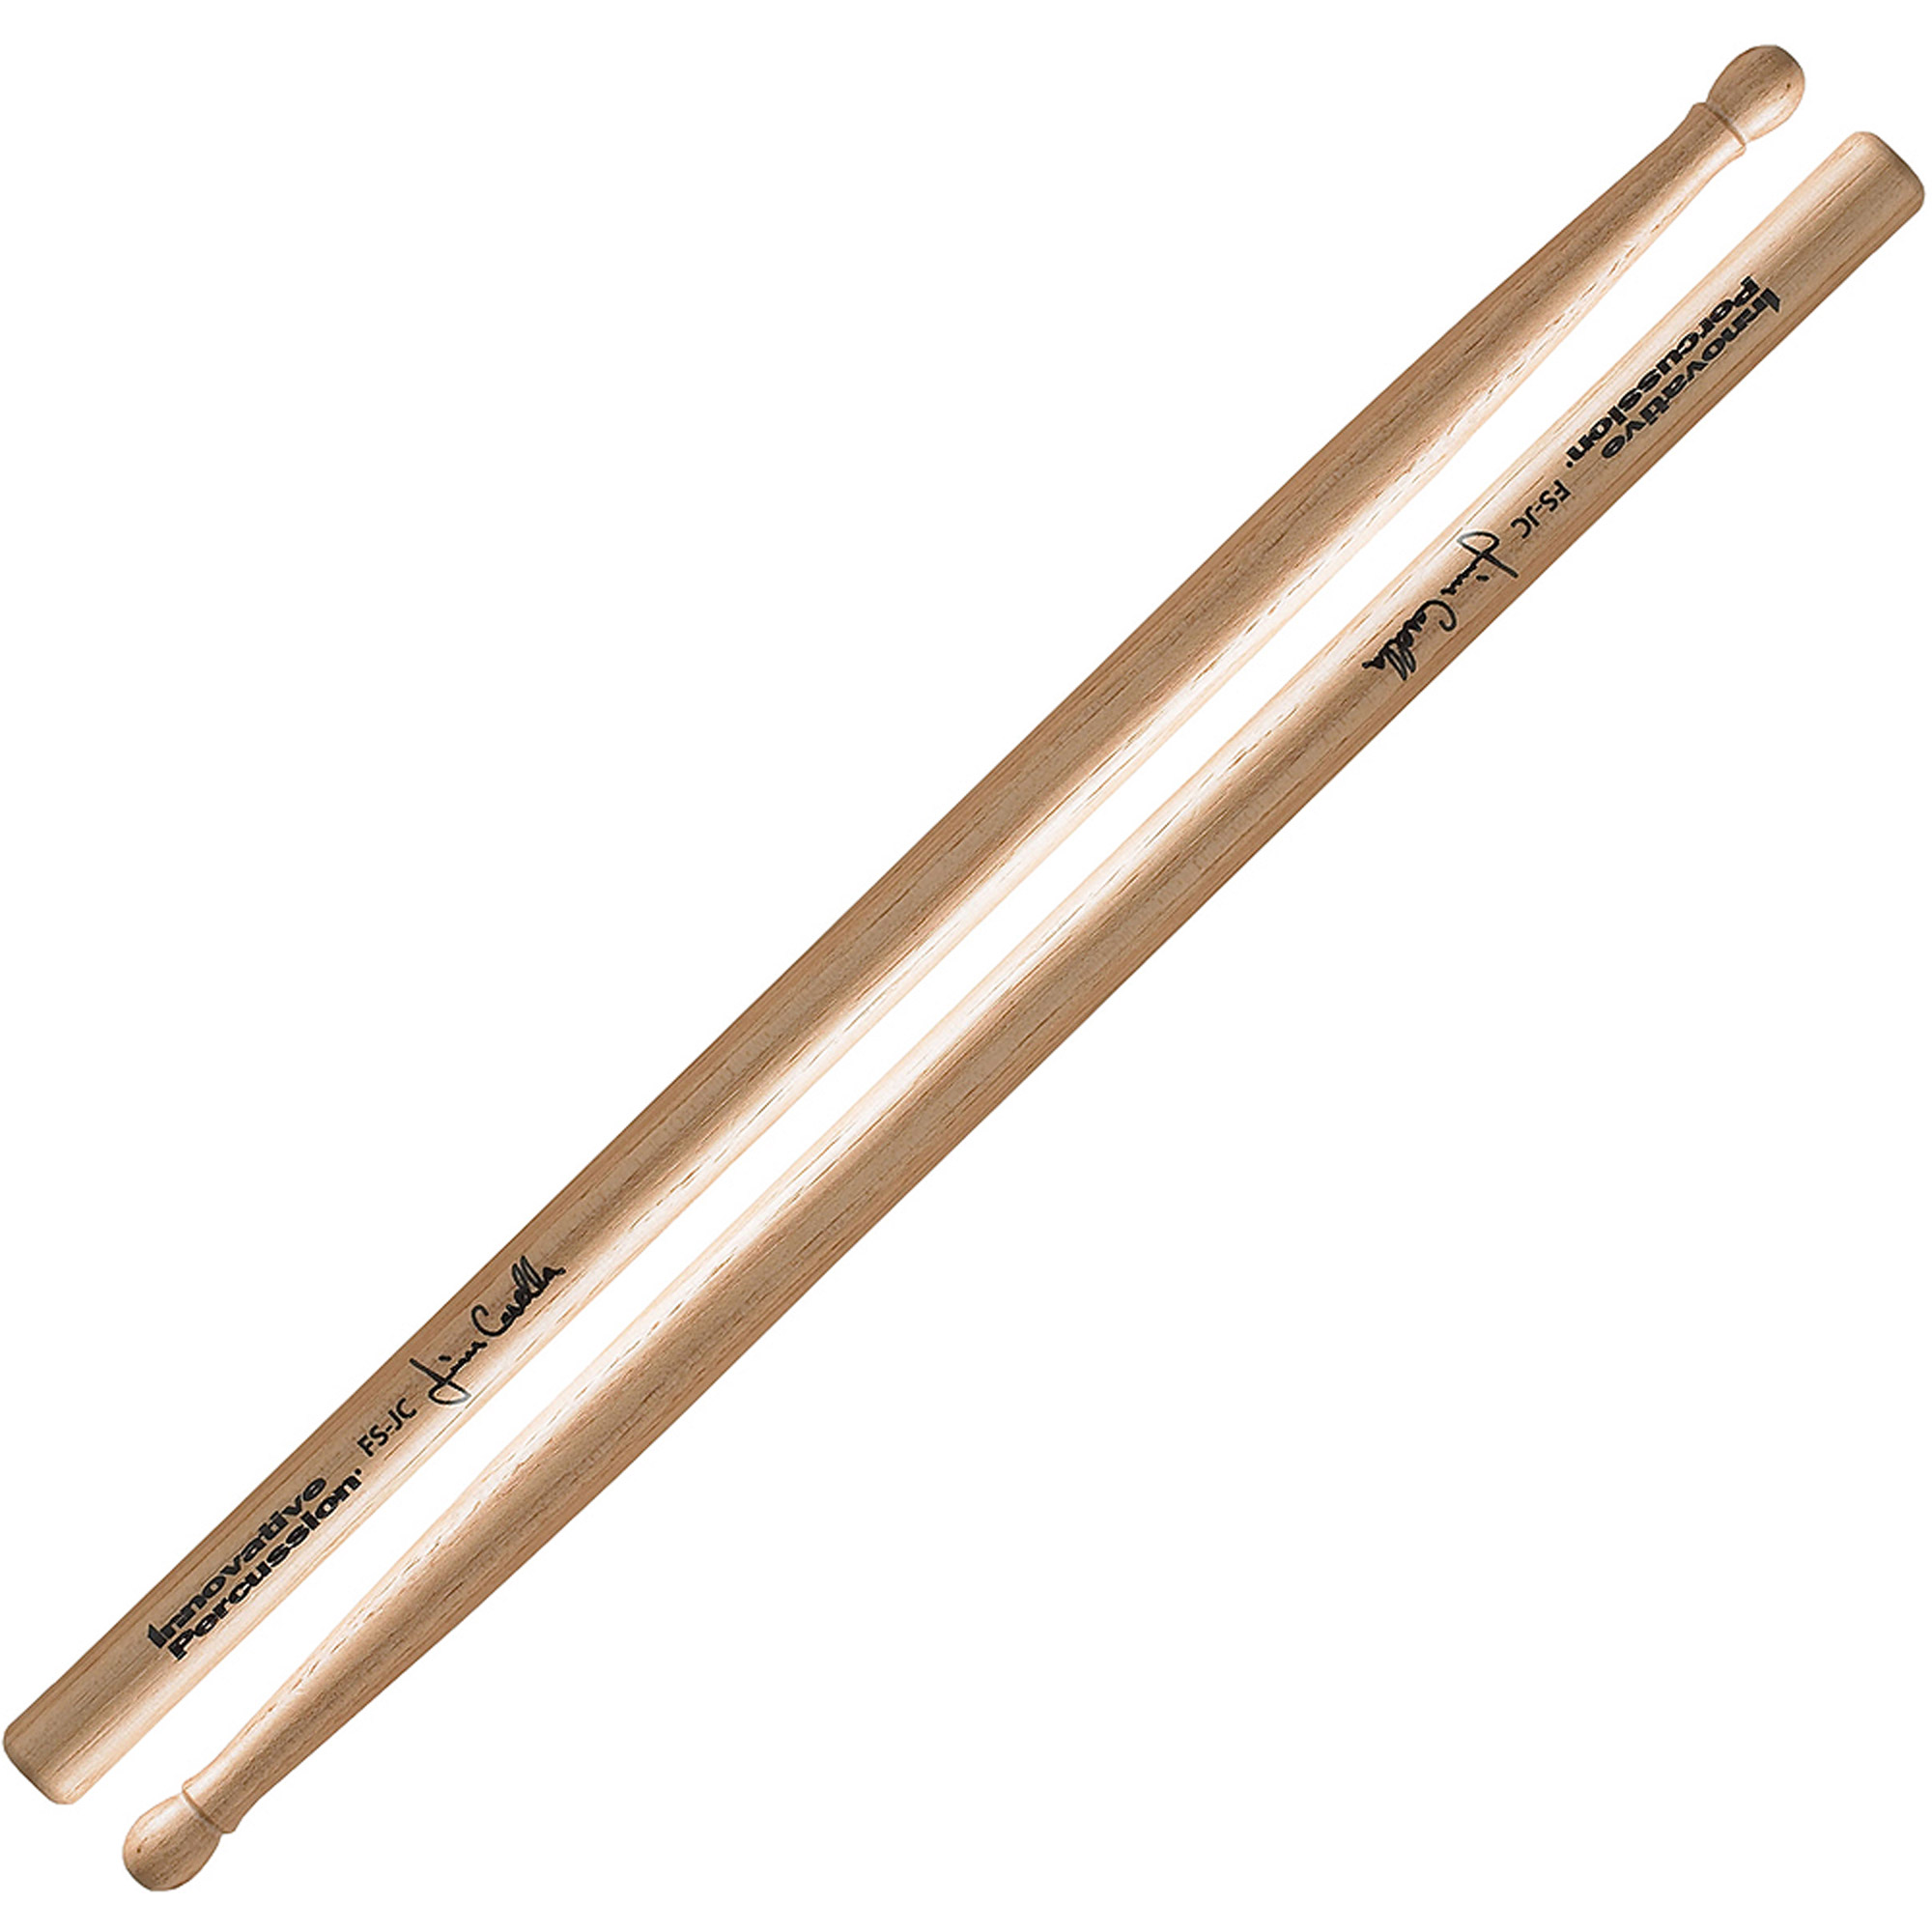 Innovative Percussion FSJC Marching Snare Field Series Jim Casella Signature Drumsticks by Innovative Percussion